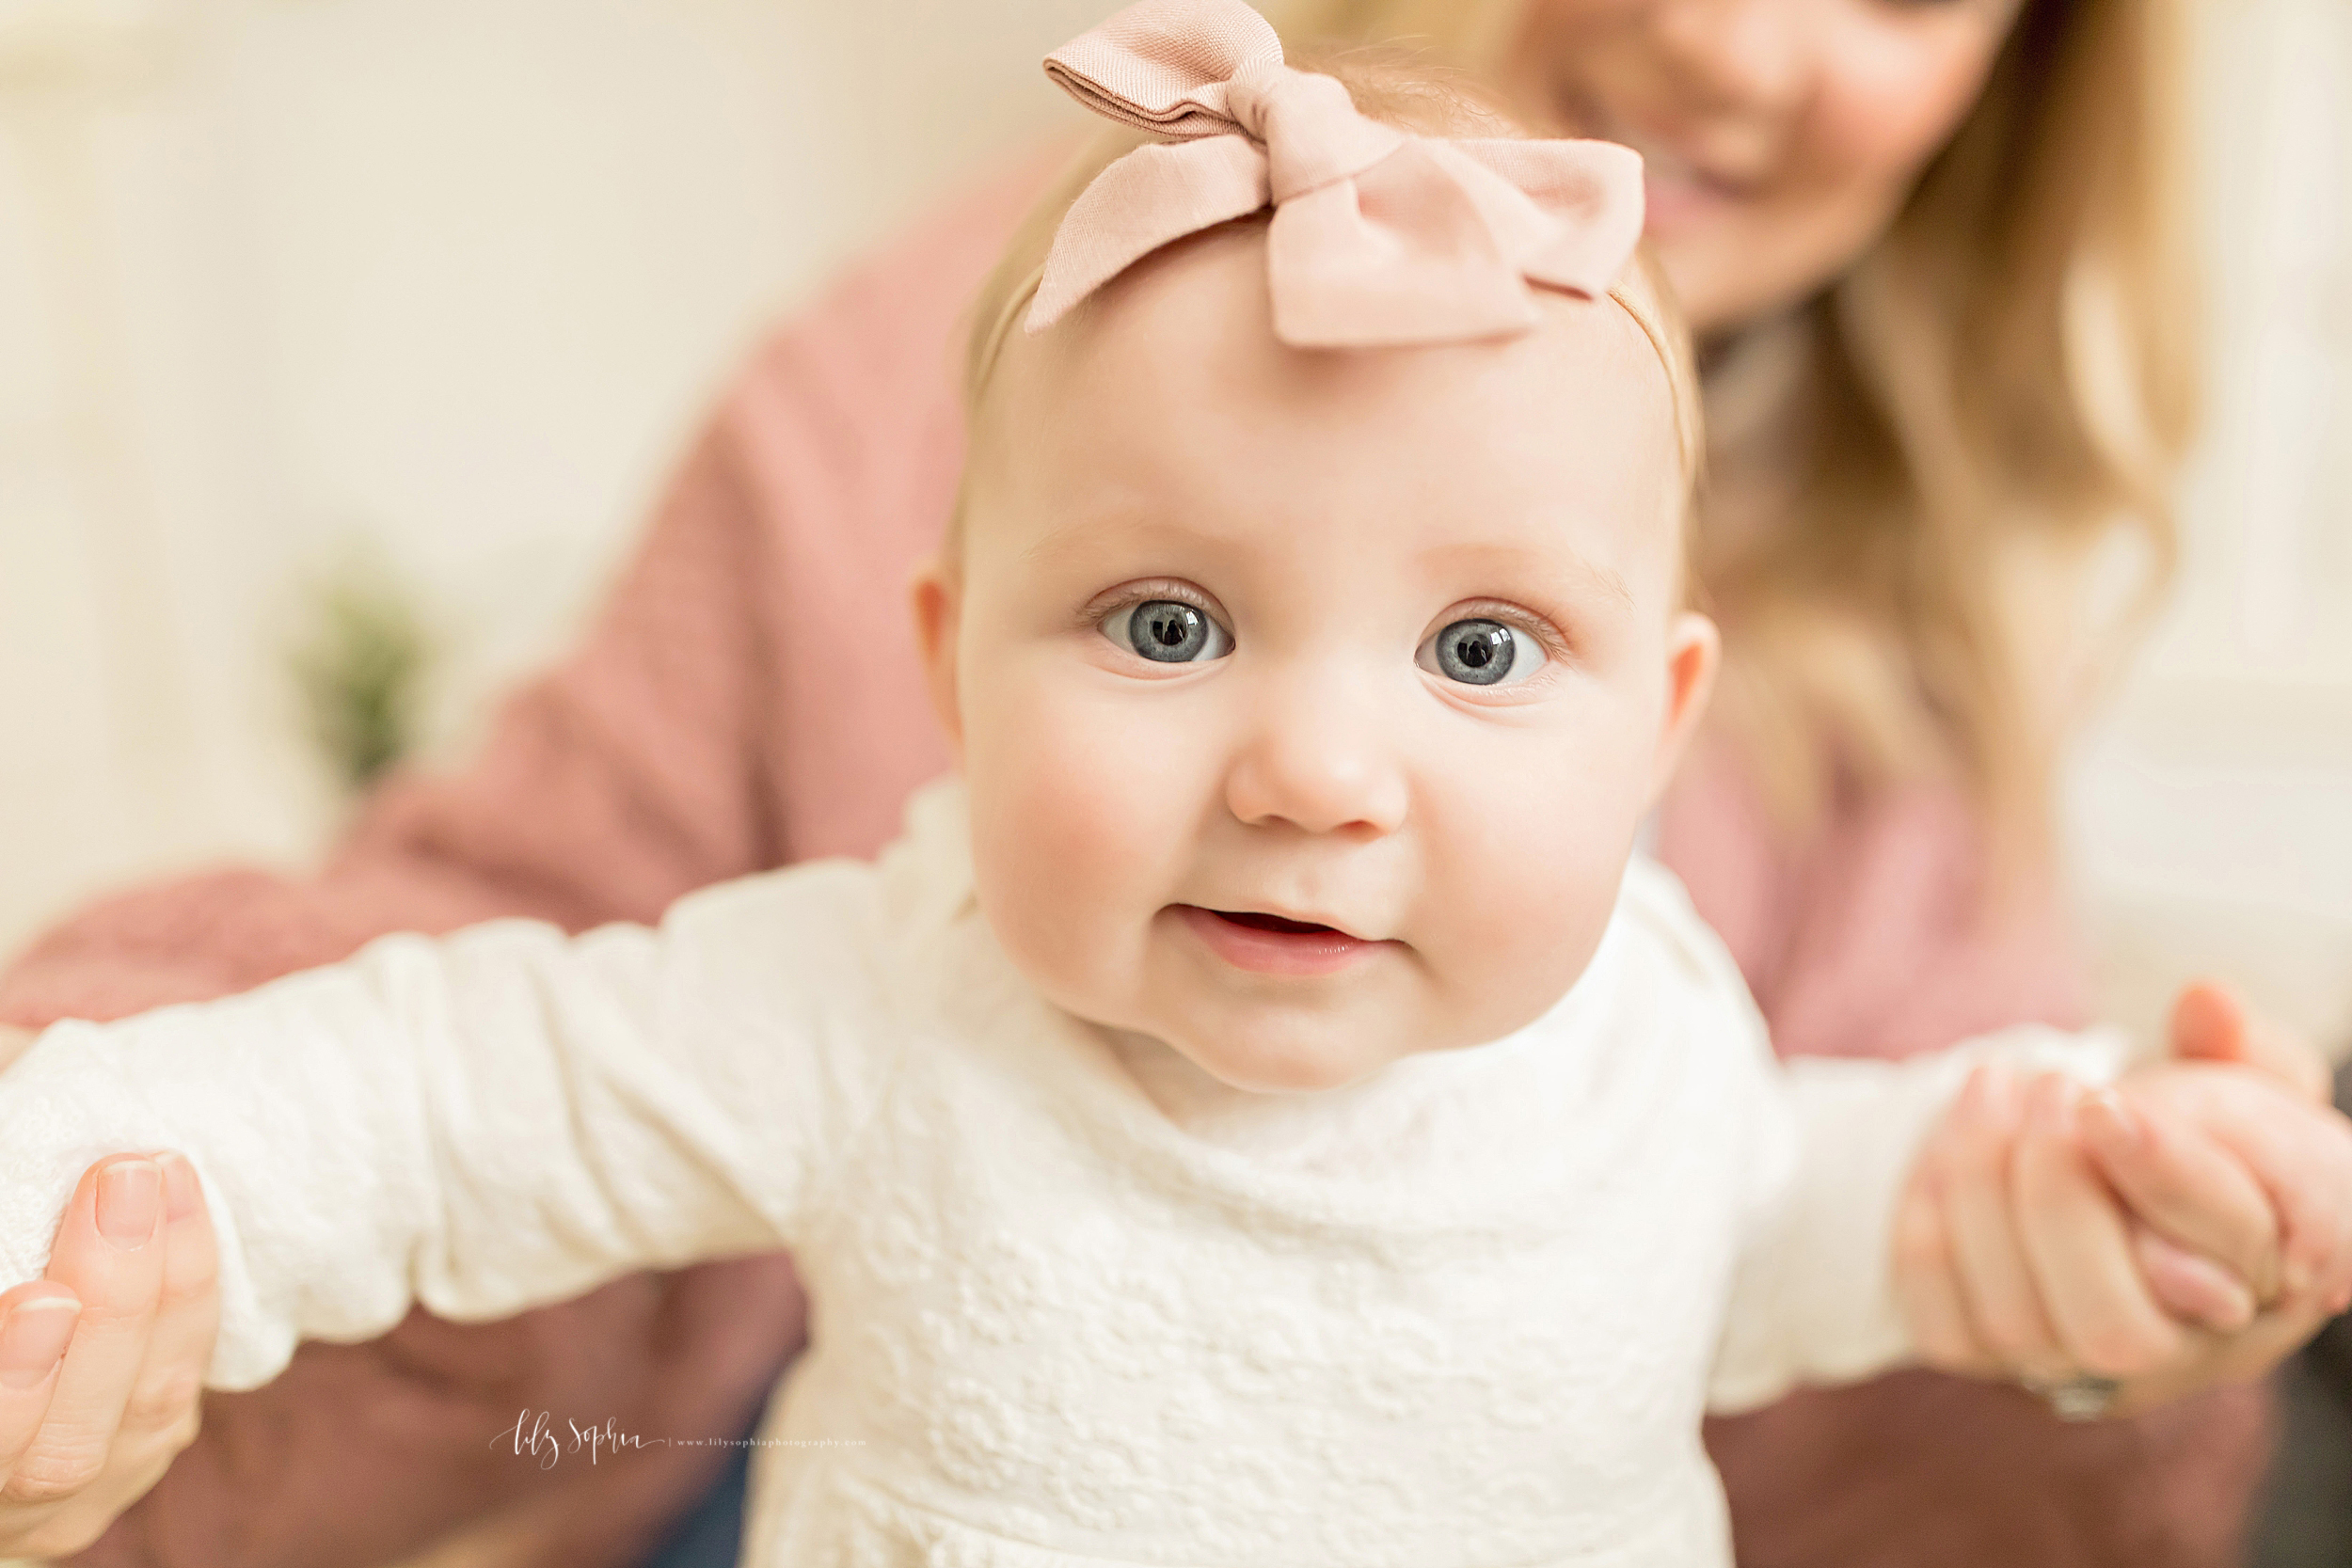 atlanta-midtown-brookhaven-ashford-dunwoody-virginia-highlands-roswell-decatur-lily-sophia-photography-in-home-six-month-milestone-family-lifestyle-session-sandy-springs_0666.jpg